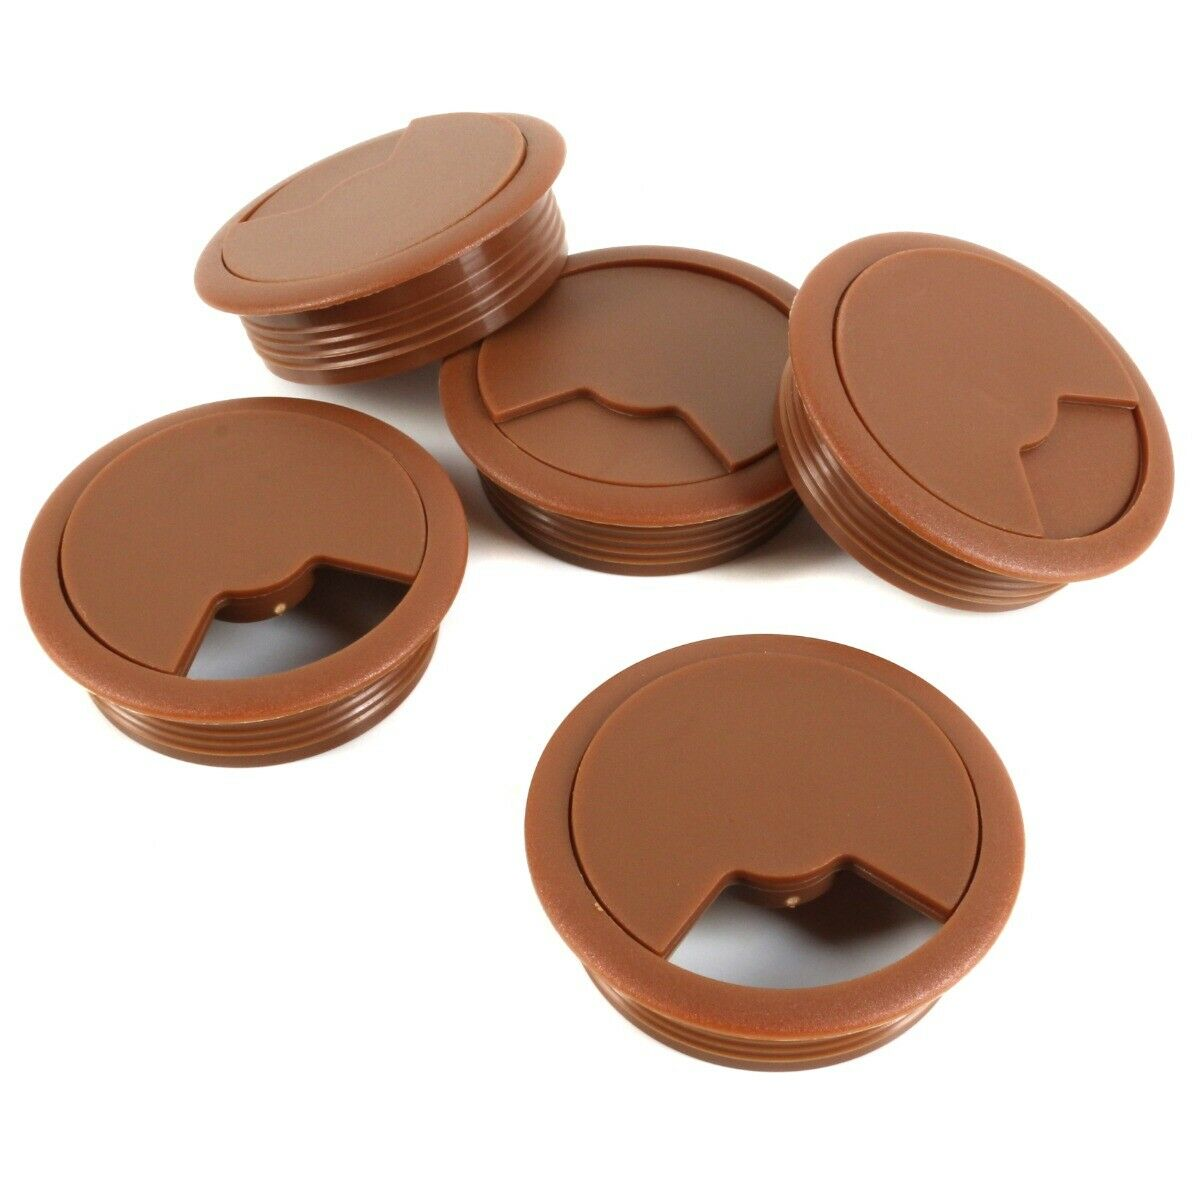 5x DESK GROMMETS 60mm Brown Table Office Computer PC TV Unit Wire Cable Outlet